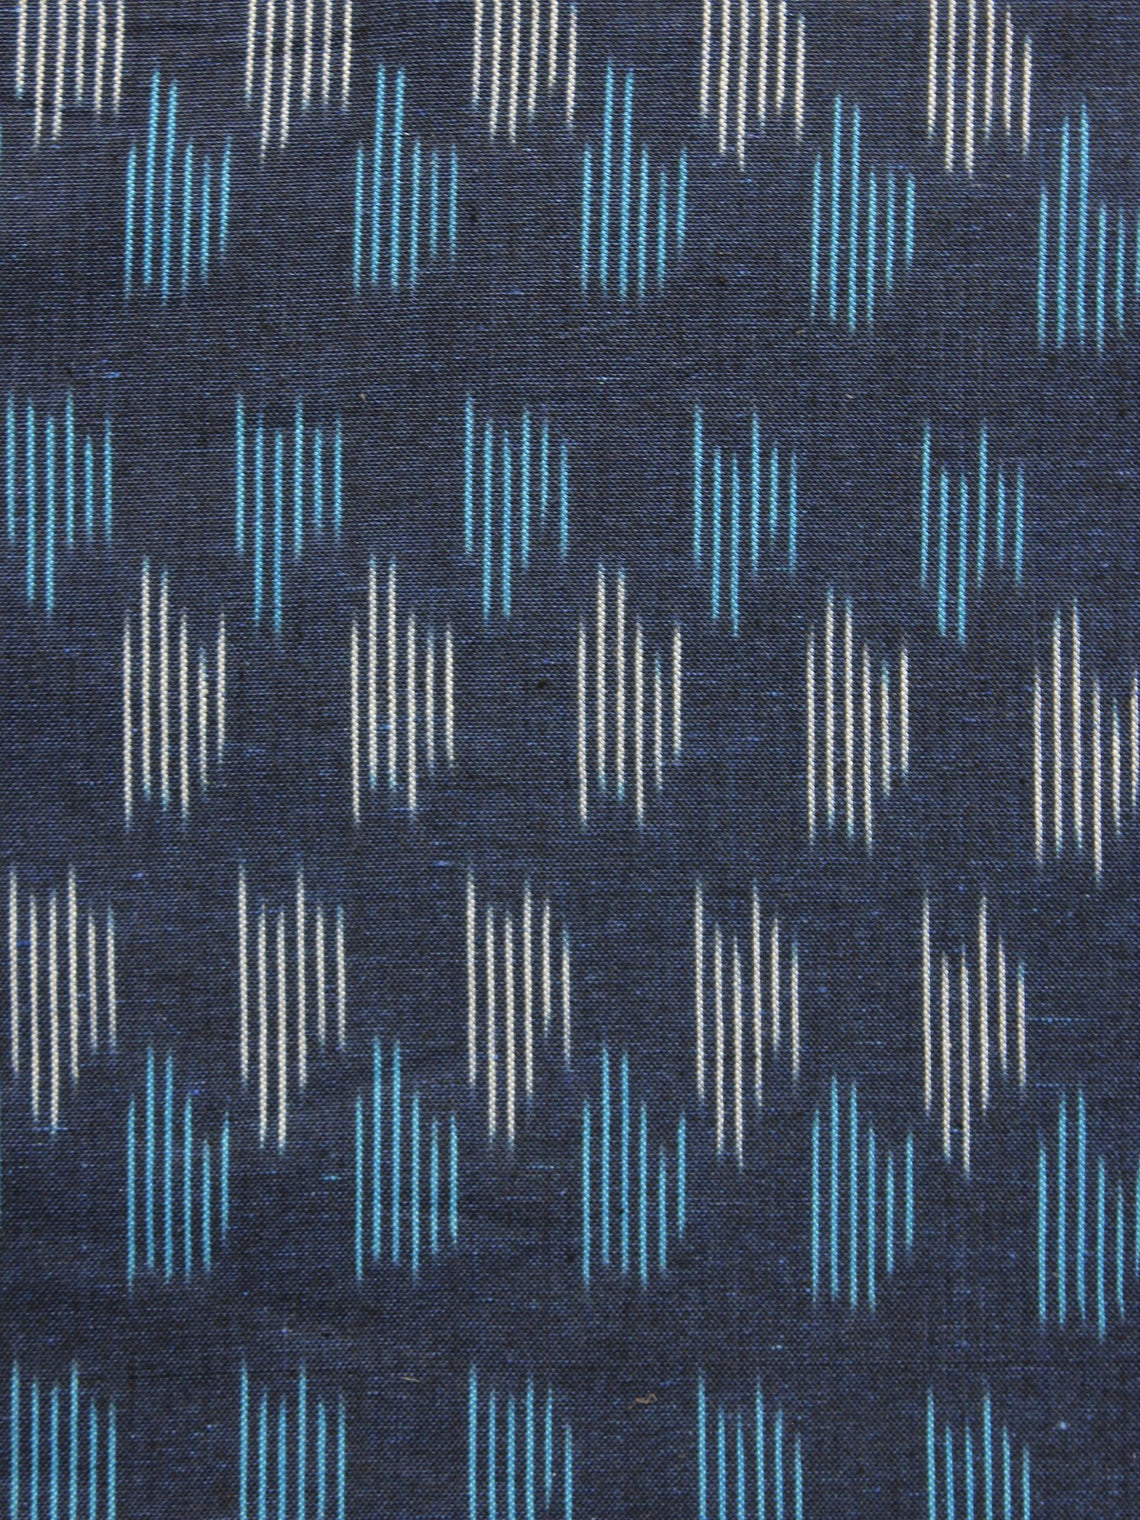 Blue White Pochampally Hand Woven Ikat Fabric Per Meter - F002F939